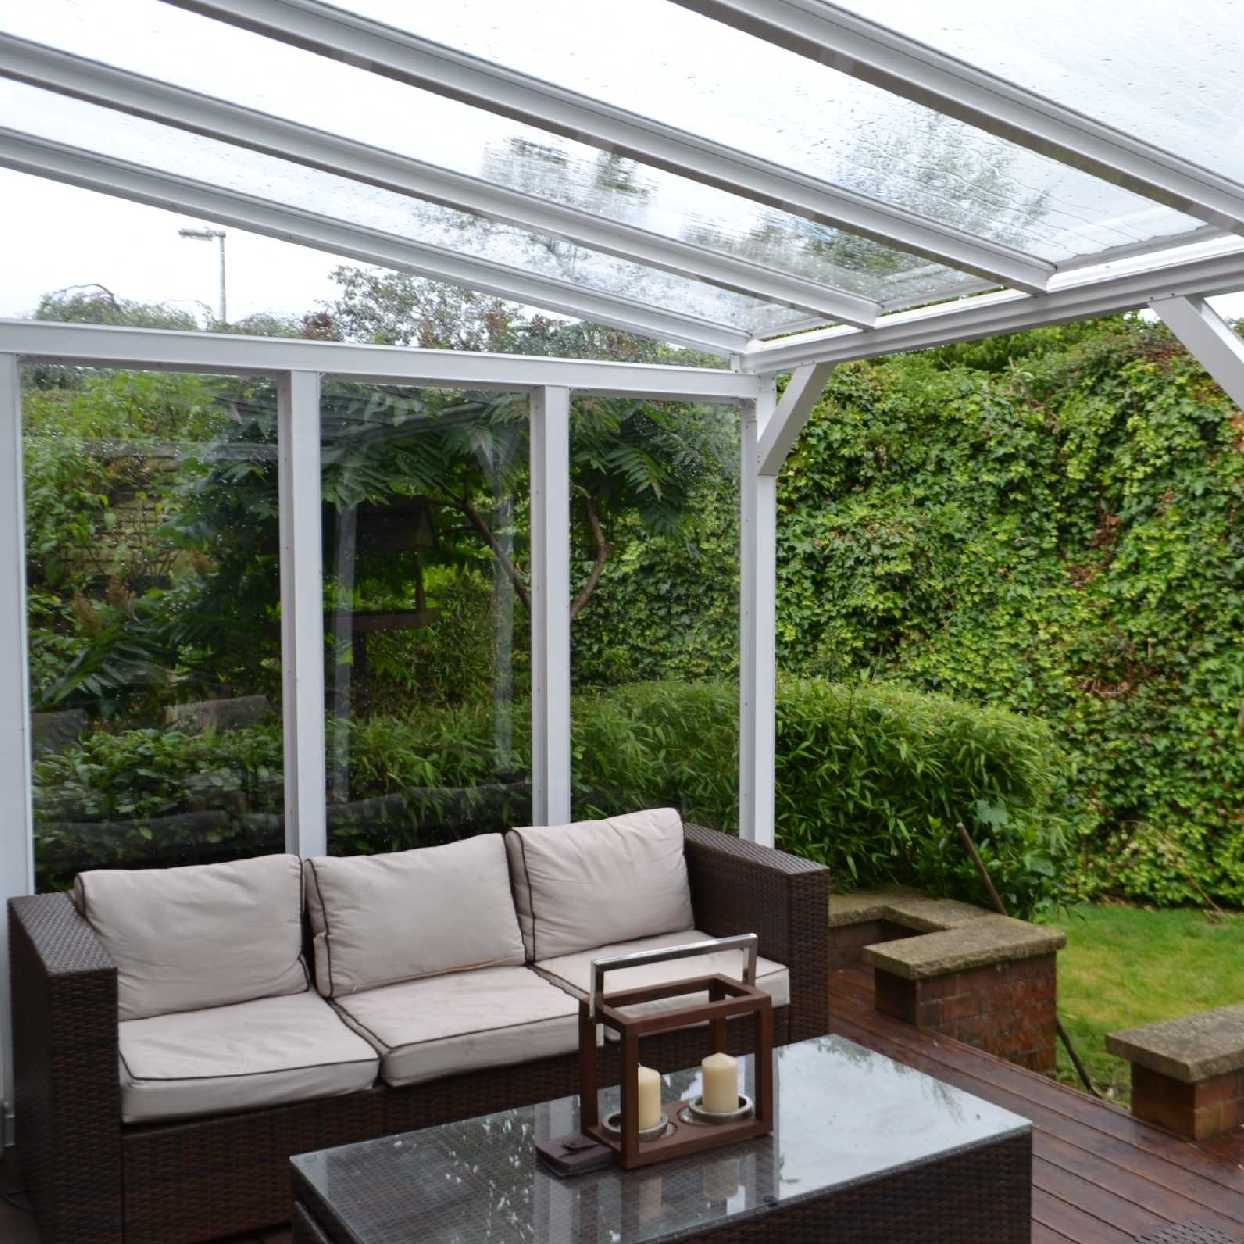 Great selection of Omega Smart White Lean-To Canopy with 16mm Polycarbonate Glazing - 4.9m (W) x 4.0m (P), (3) Supporting Posts